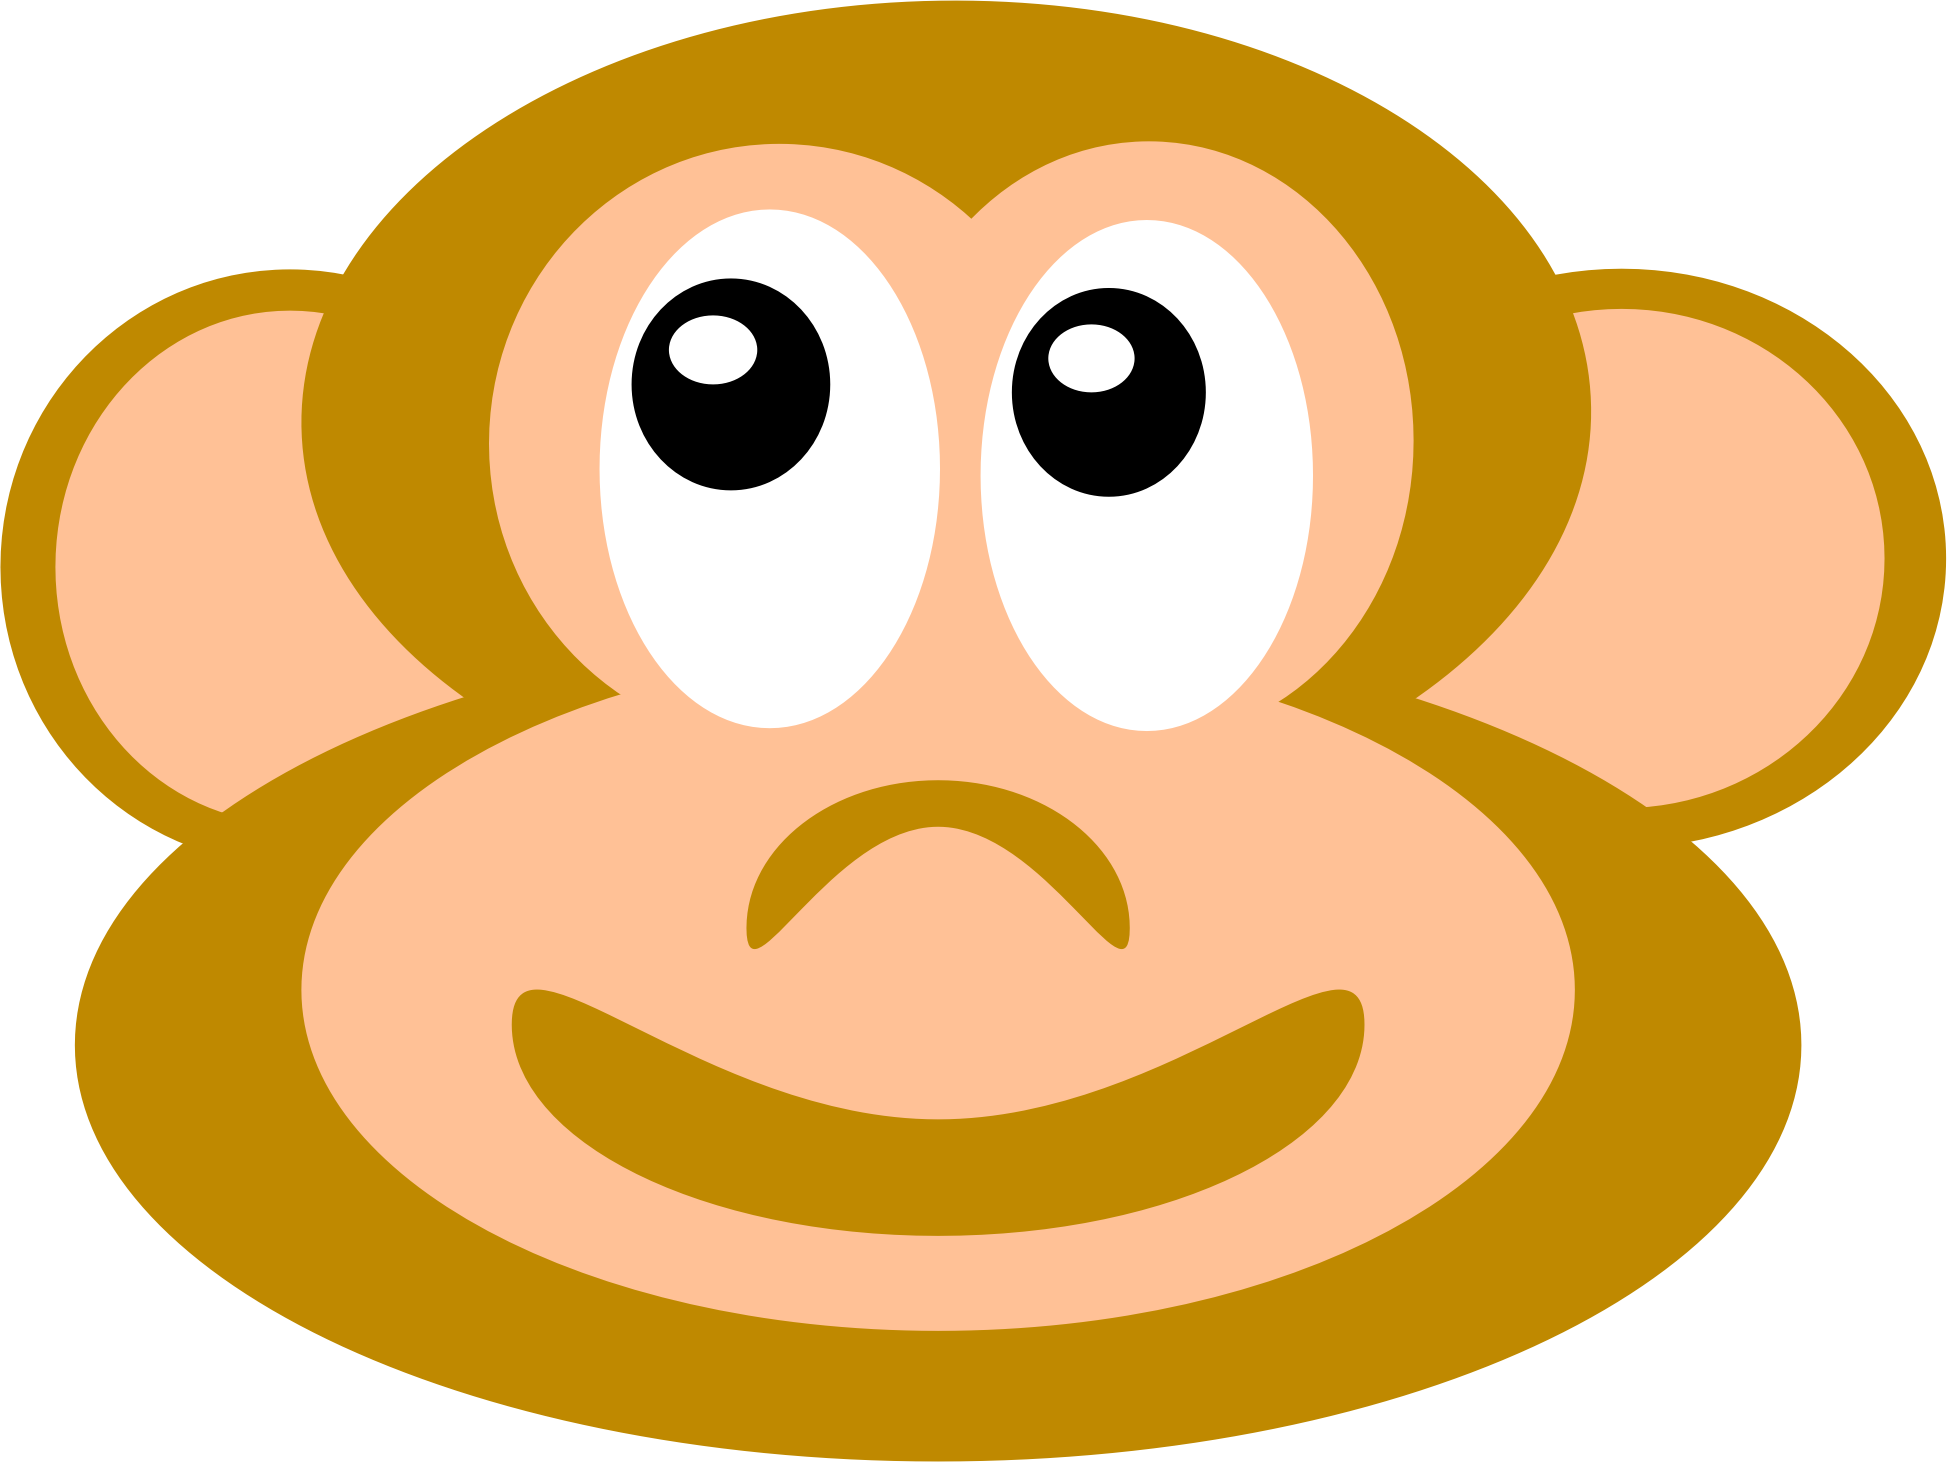 Monkey by brianchan2002